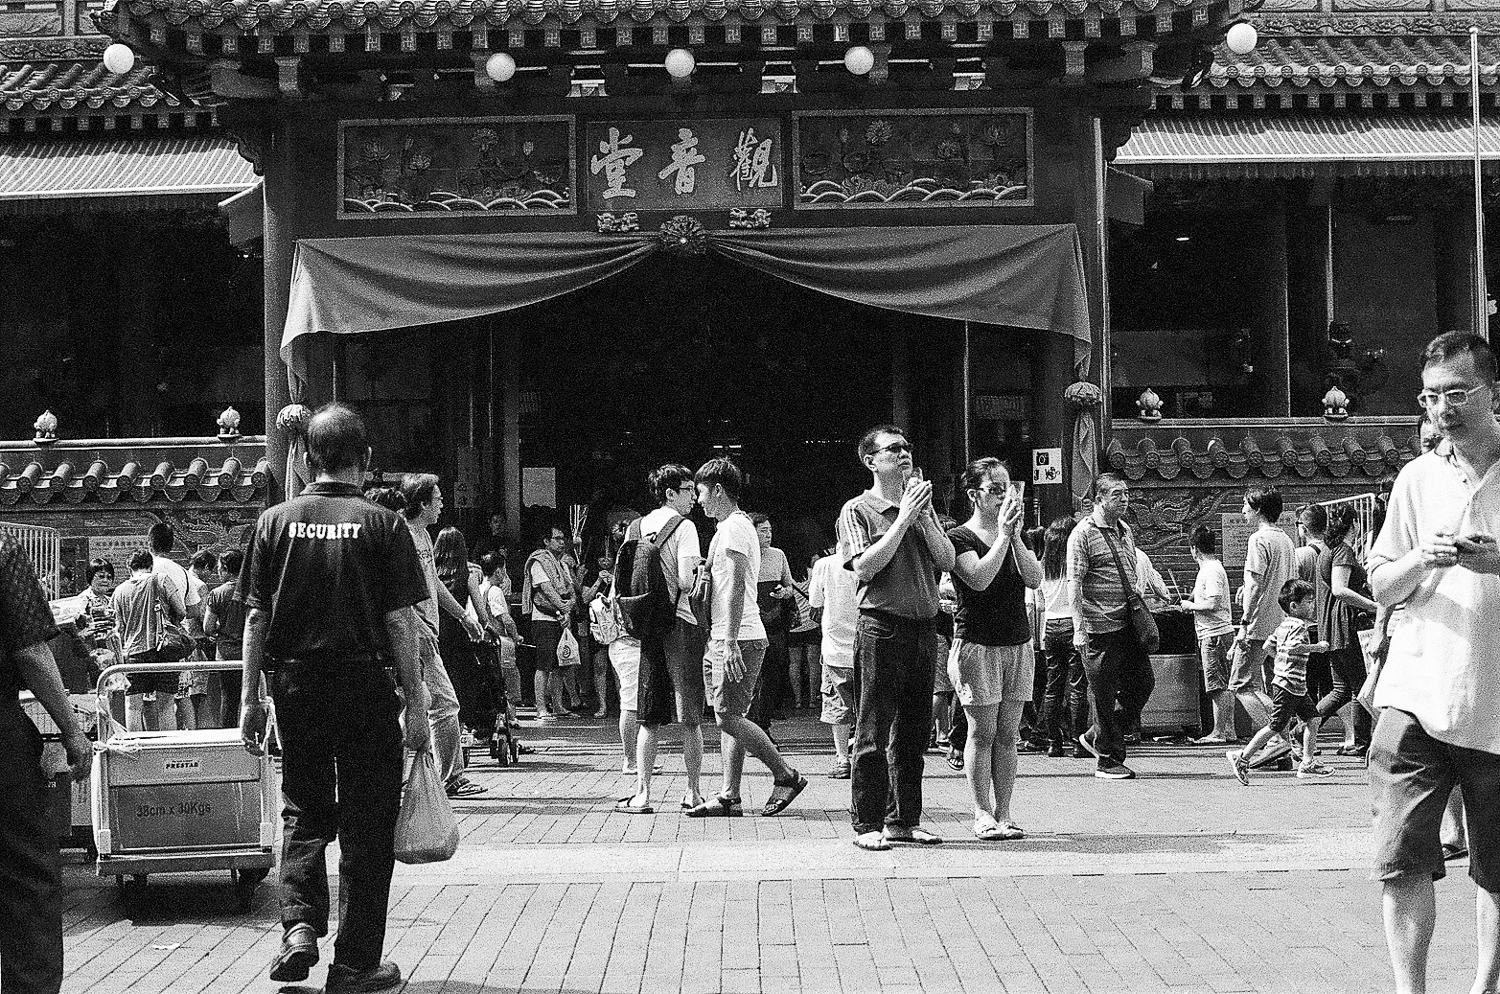 观音堂佛祖庙。Kwan Im Thong Hood Cho Temple. Waterloo Street, Singapore.